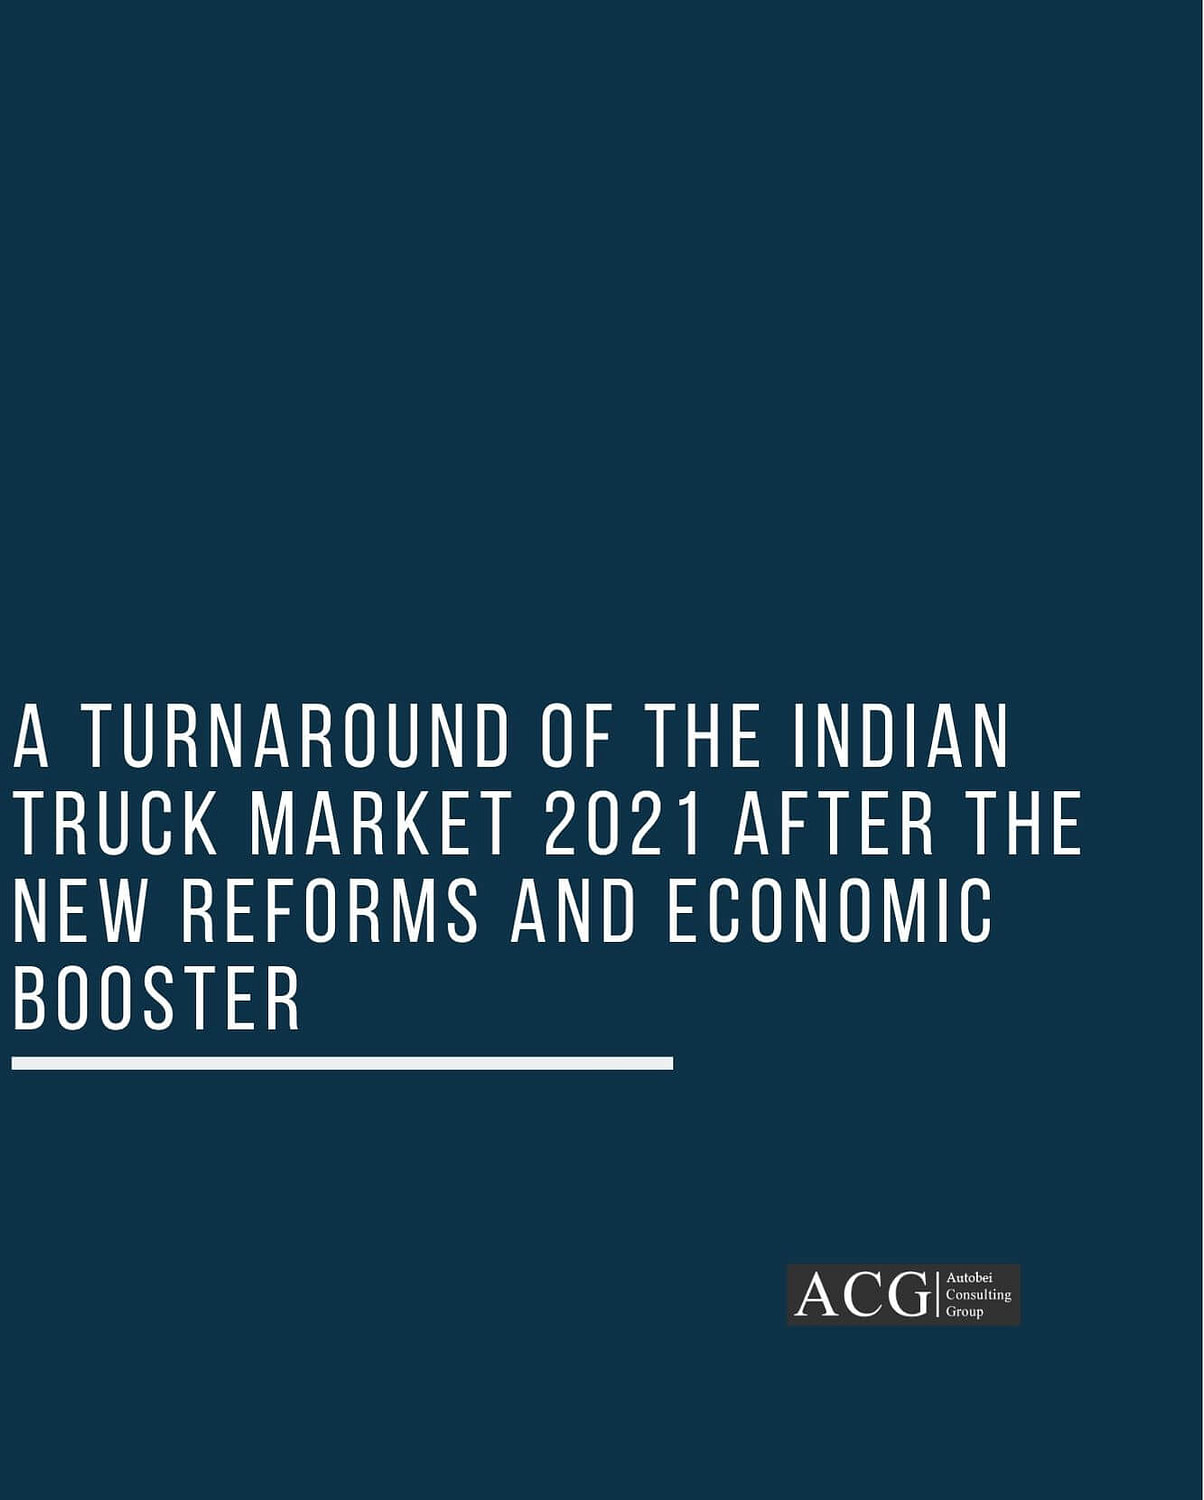 A Turnaround of the Indian Truck Market 2021 after the New reforms and Economic booster